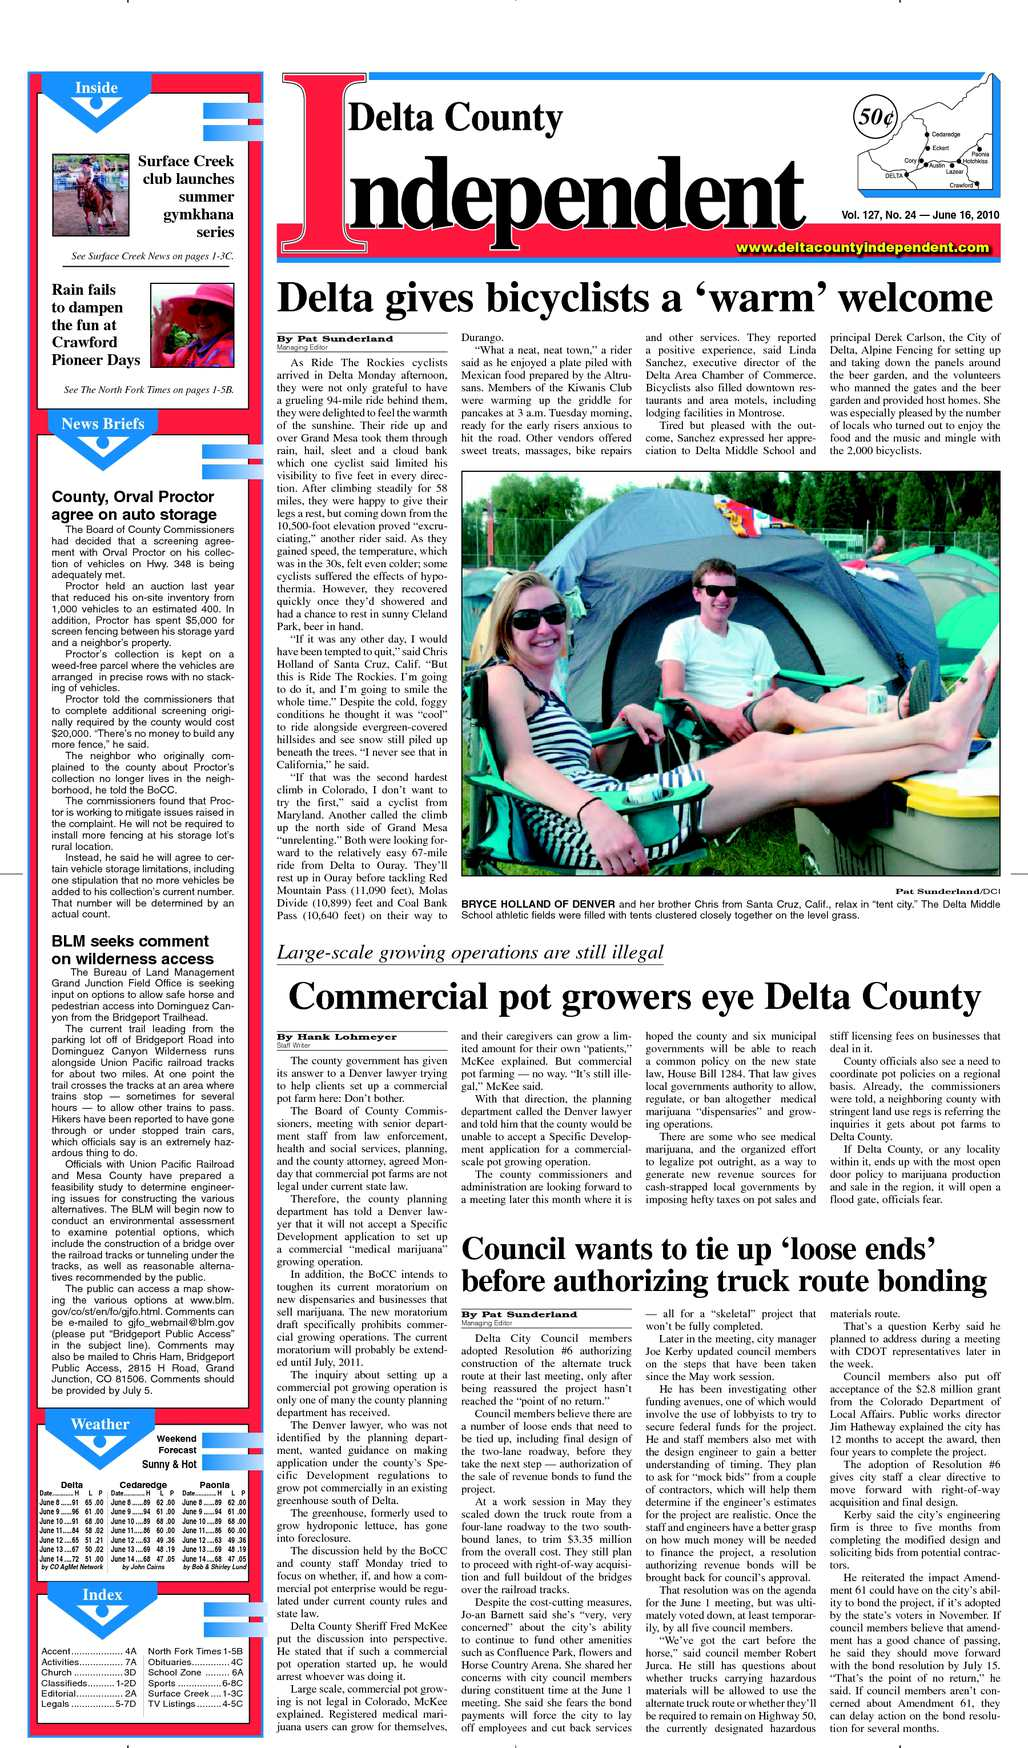 Calaméo - Delta County Independent, Issue 24, June 16, 2010